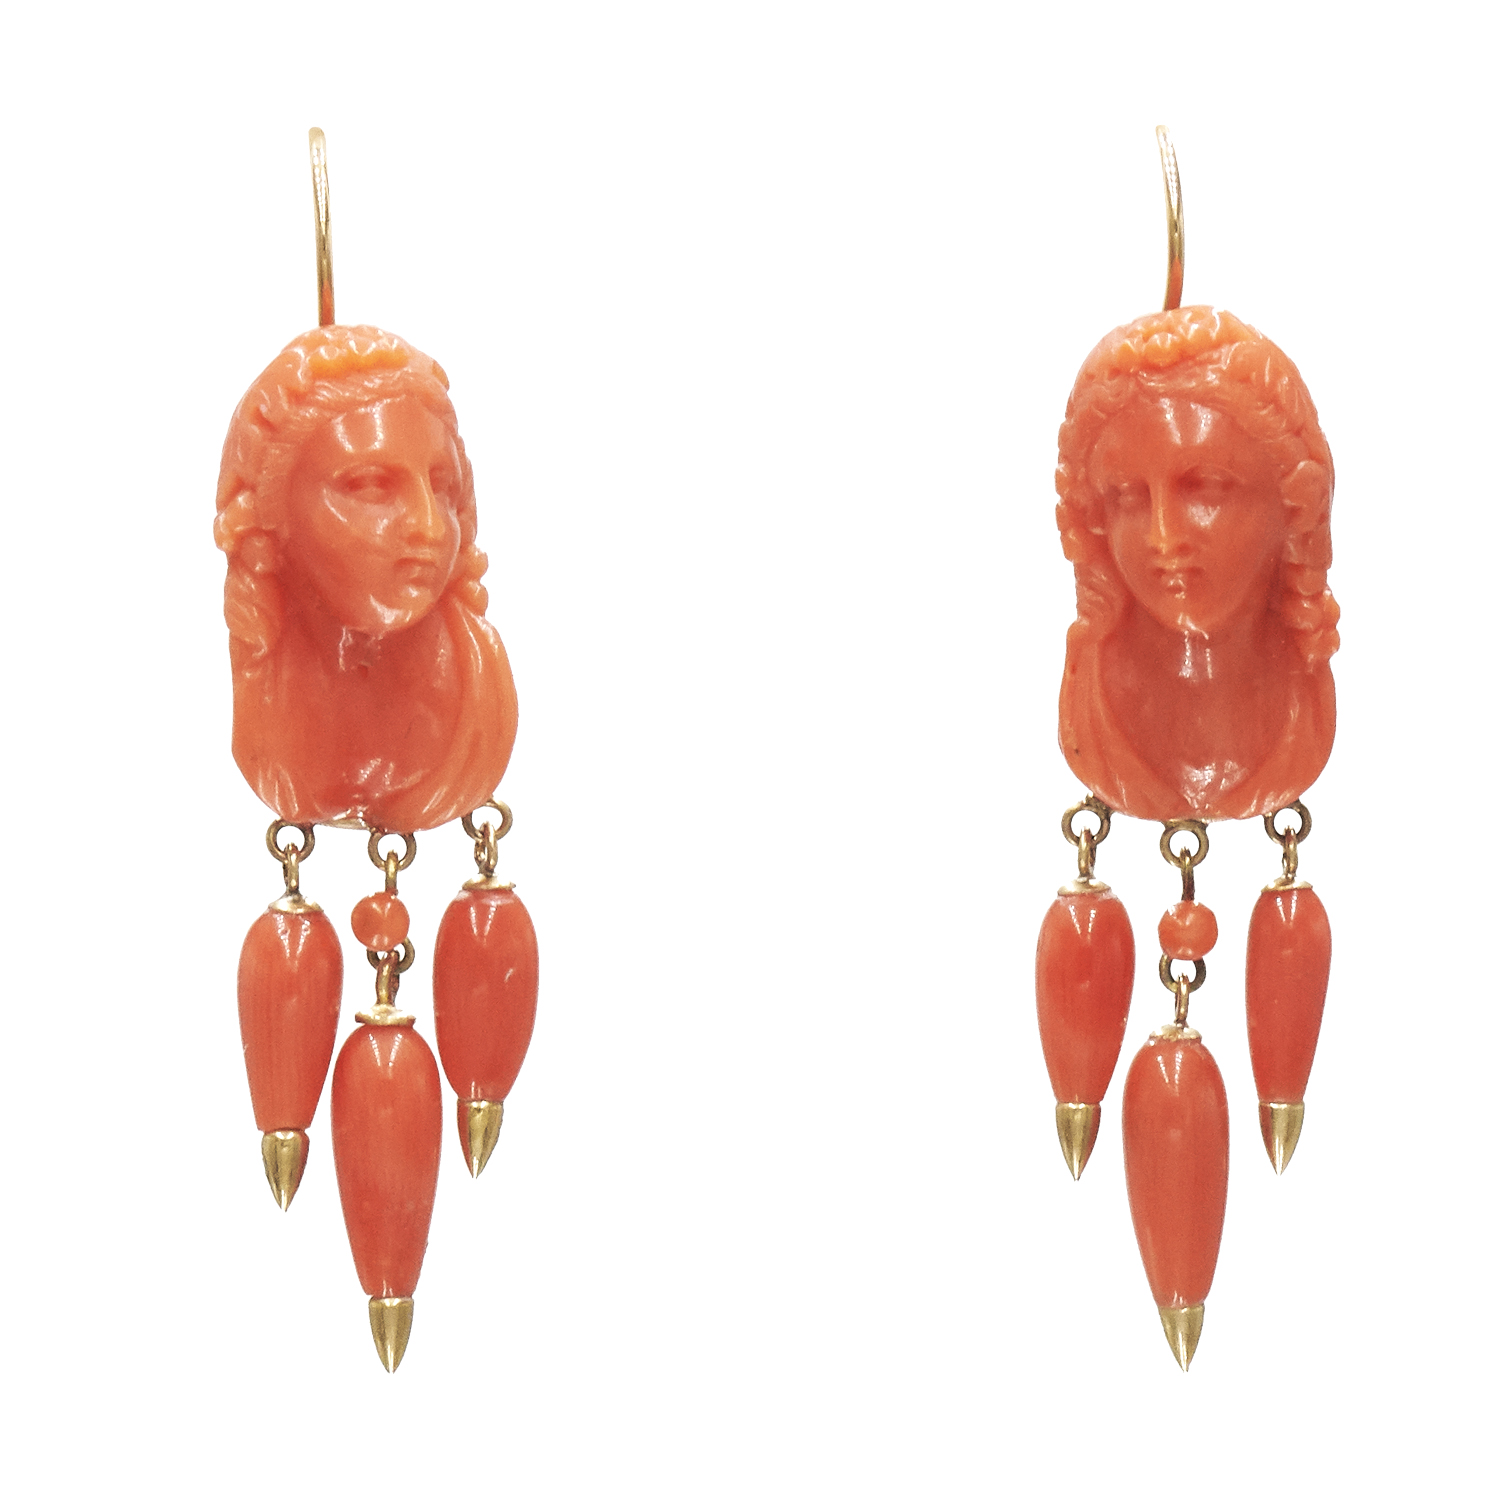 Antique Carved Coral Cameo Pendant Earrings Style E-39017-FL-0-0